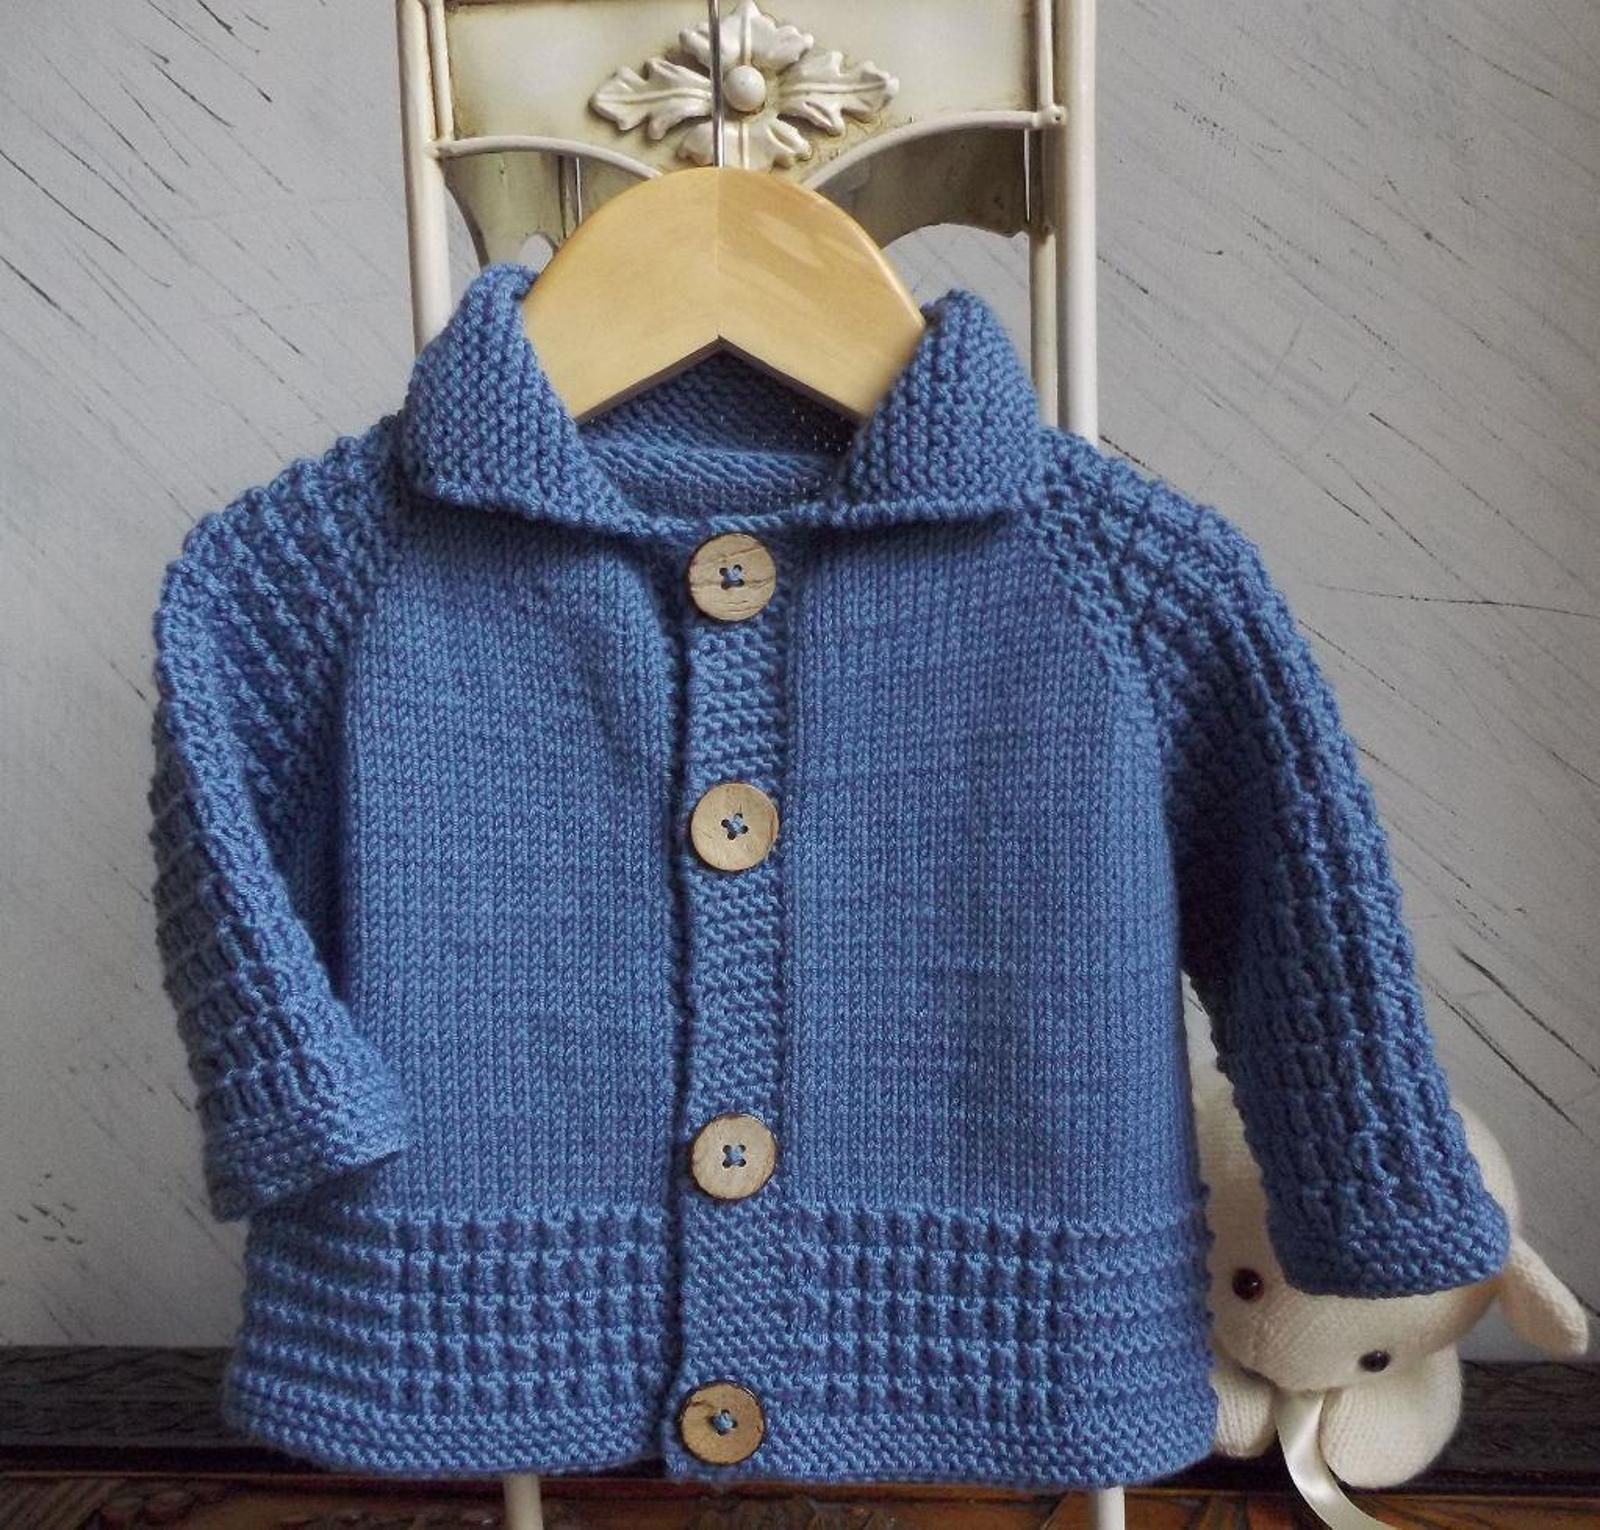 Top Down Baby Sweater Knitting Patterns Easier - To Adjust ...